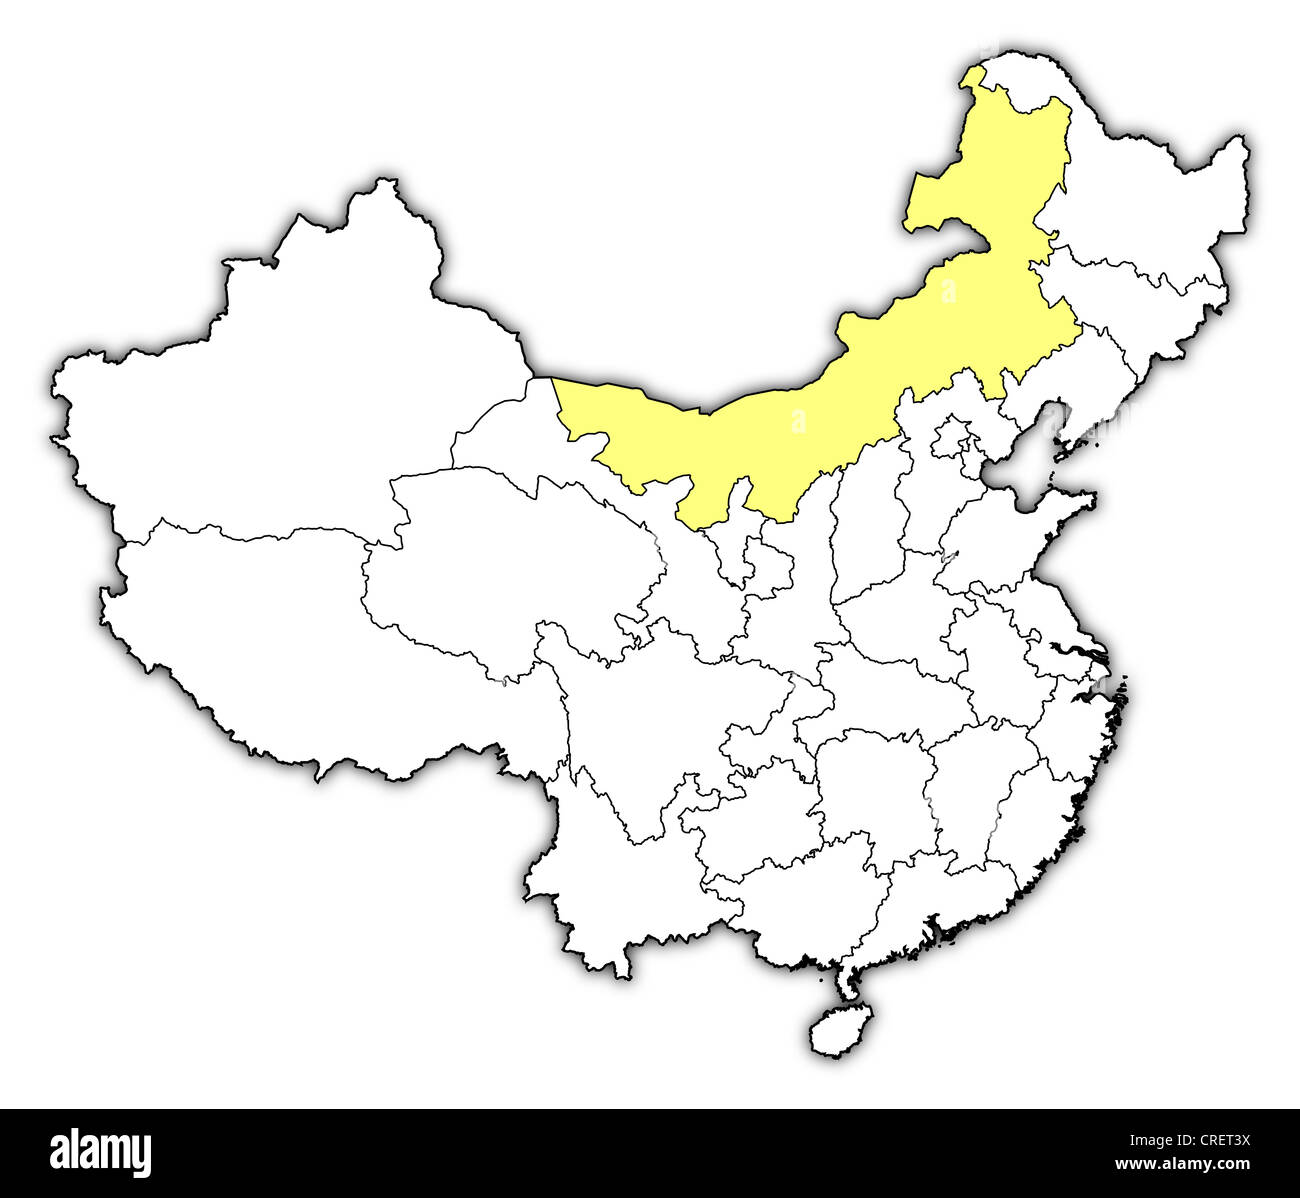 Map china inner mongolia highlighted stock photos map china inner political map of china with the several provinces where inner mongolia is highlighted stock gumiabroncs Choice Image